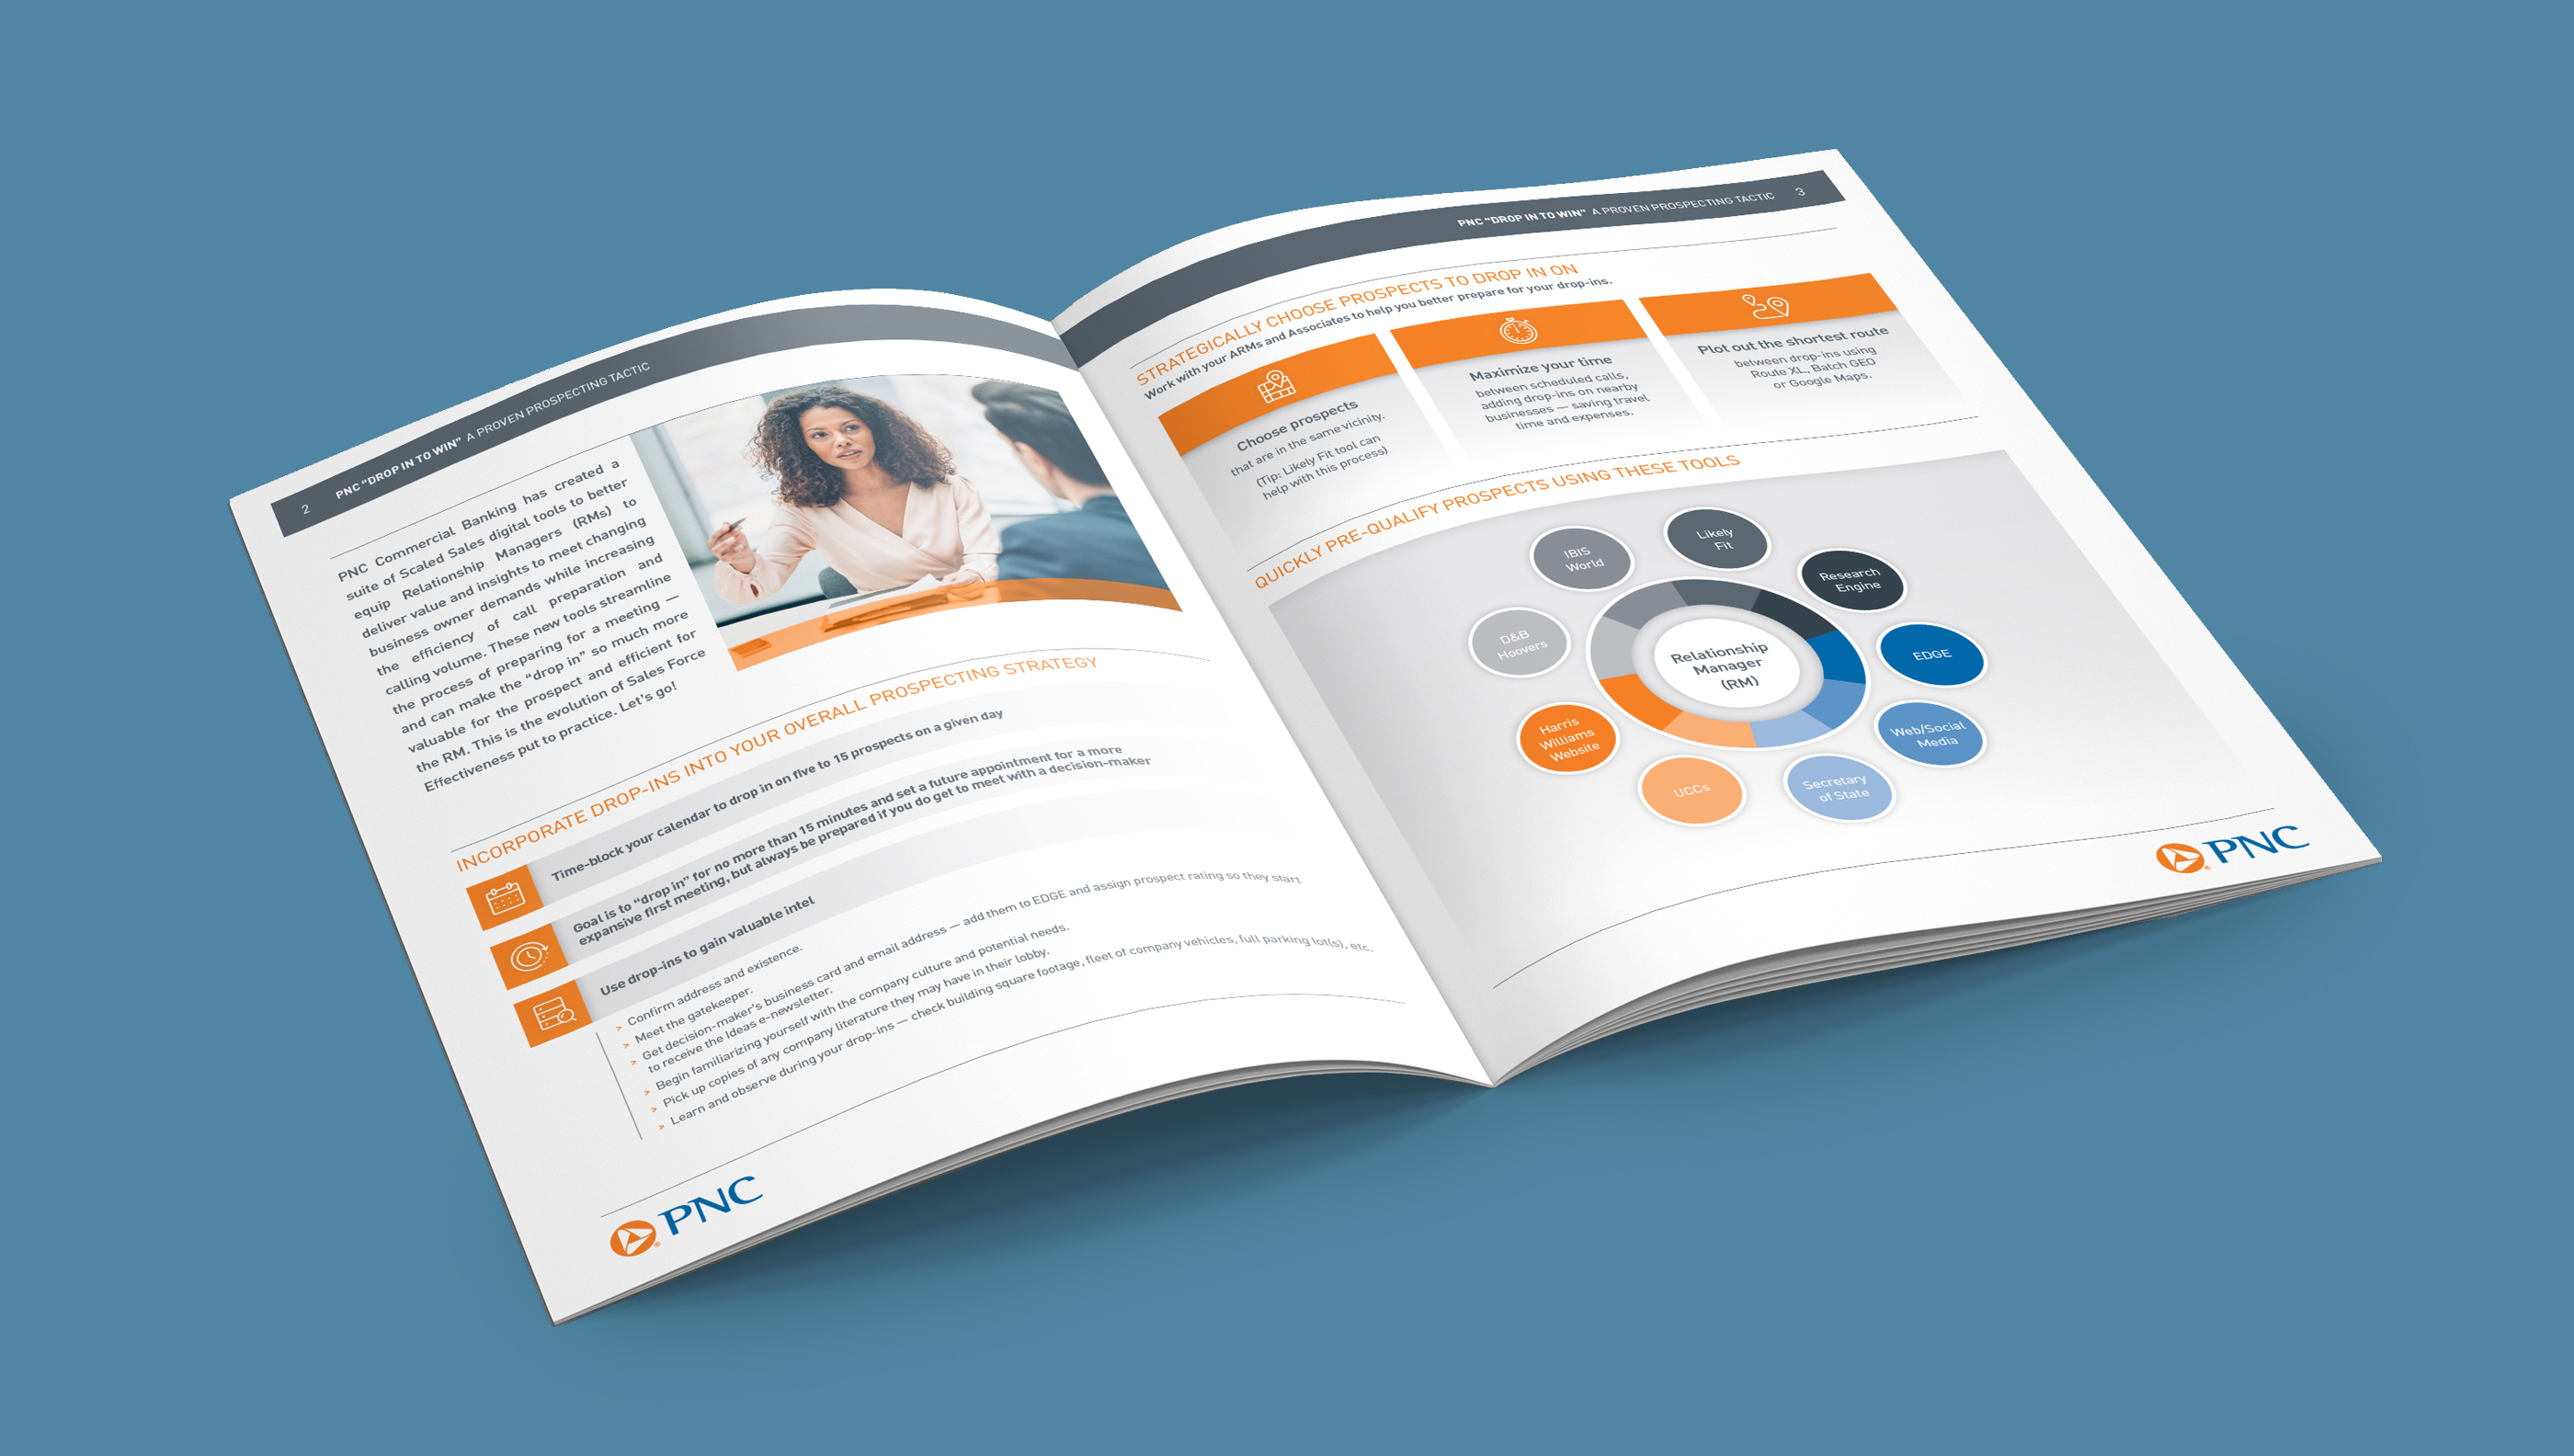 A mockup of a brochure with the pages open over a blue background. The spread features white pages with dark gray header bars, imagery of a business person, and orange, blue, and gray icons and charts.